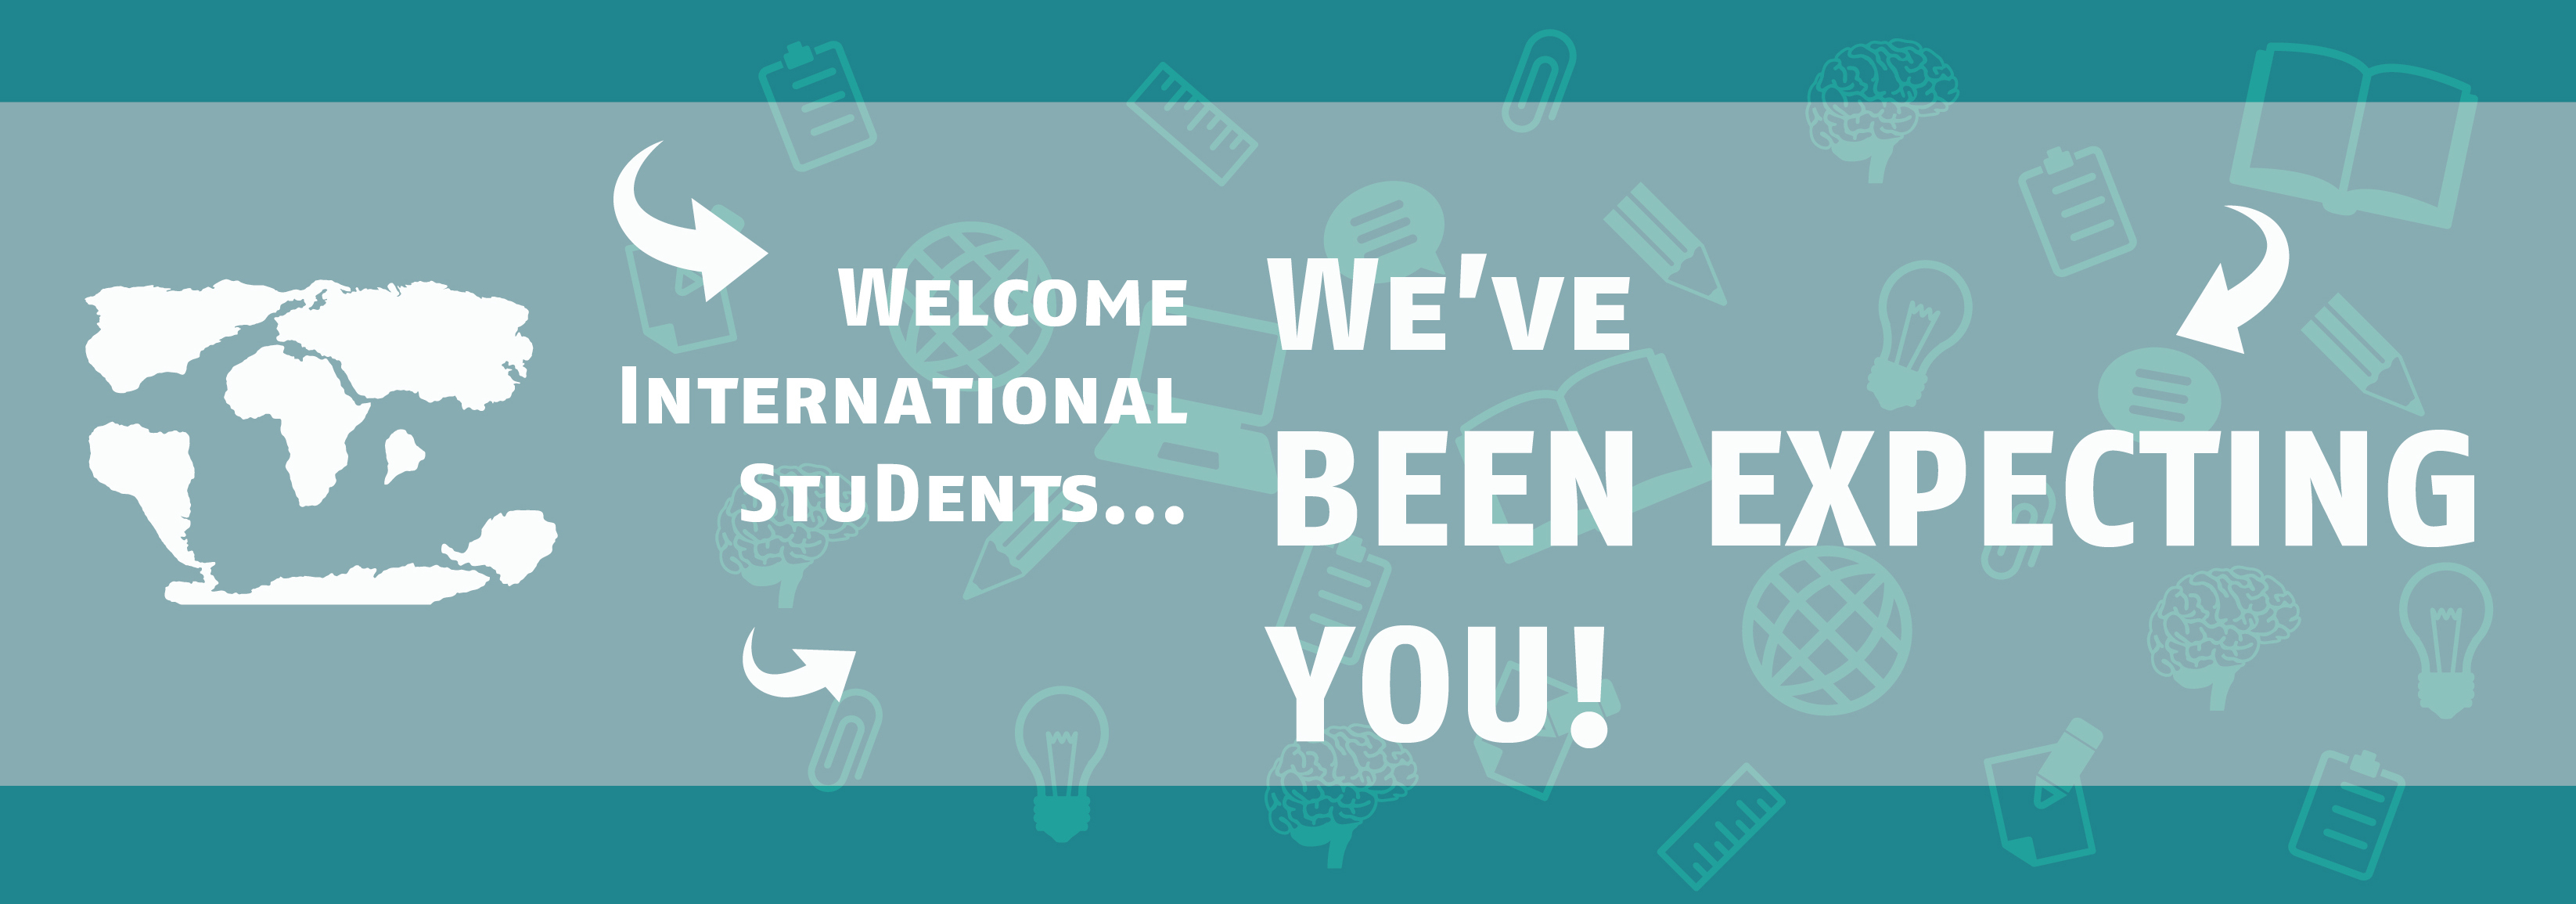 Sciences Po Lille Welcome international students